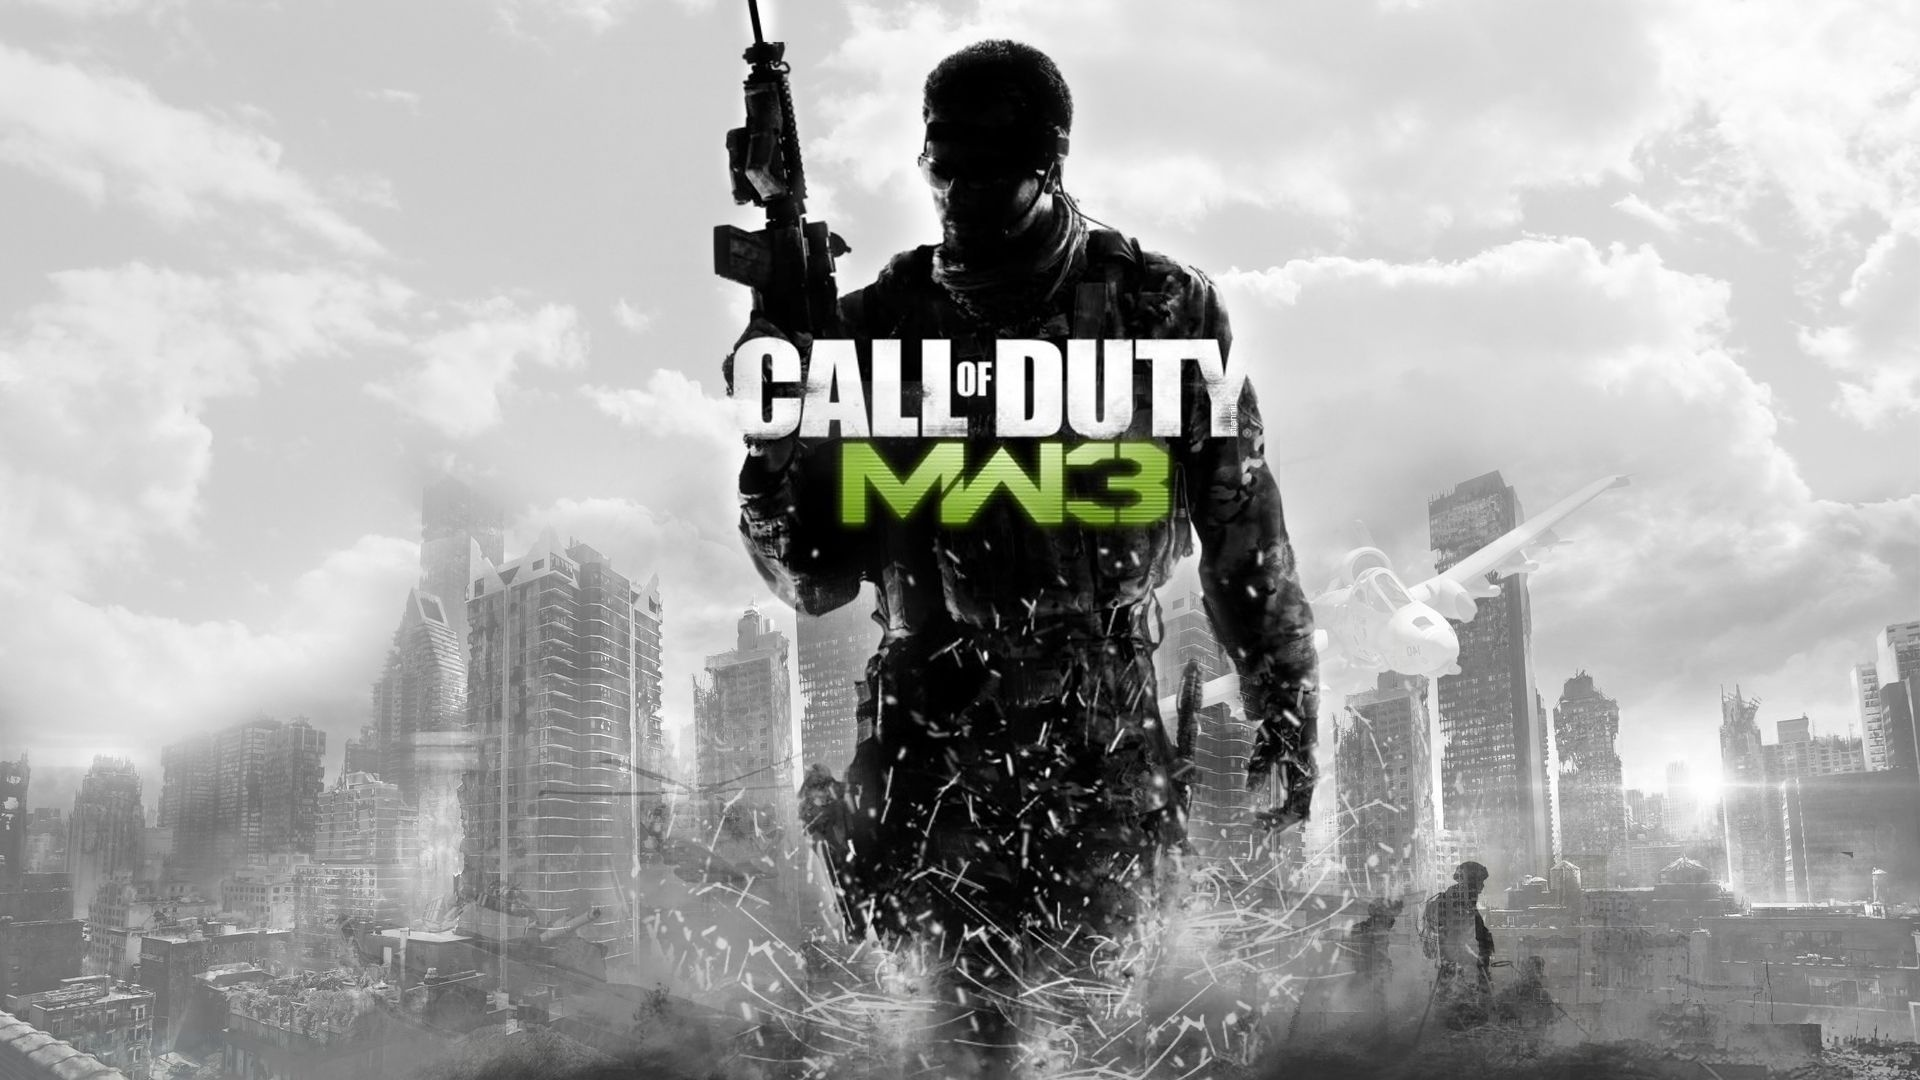 GamingModz-com-controllers-are-compatible-with-Call-of-Duty-MW-as-well-as-all-the-games-out-there-wallpaper-wp3406166